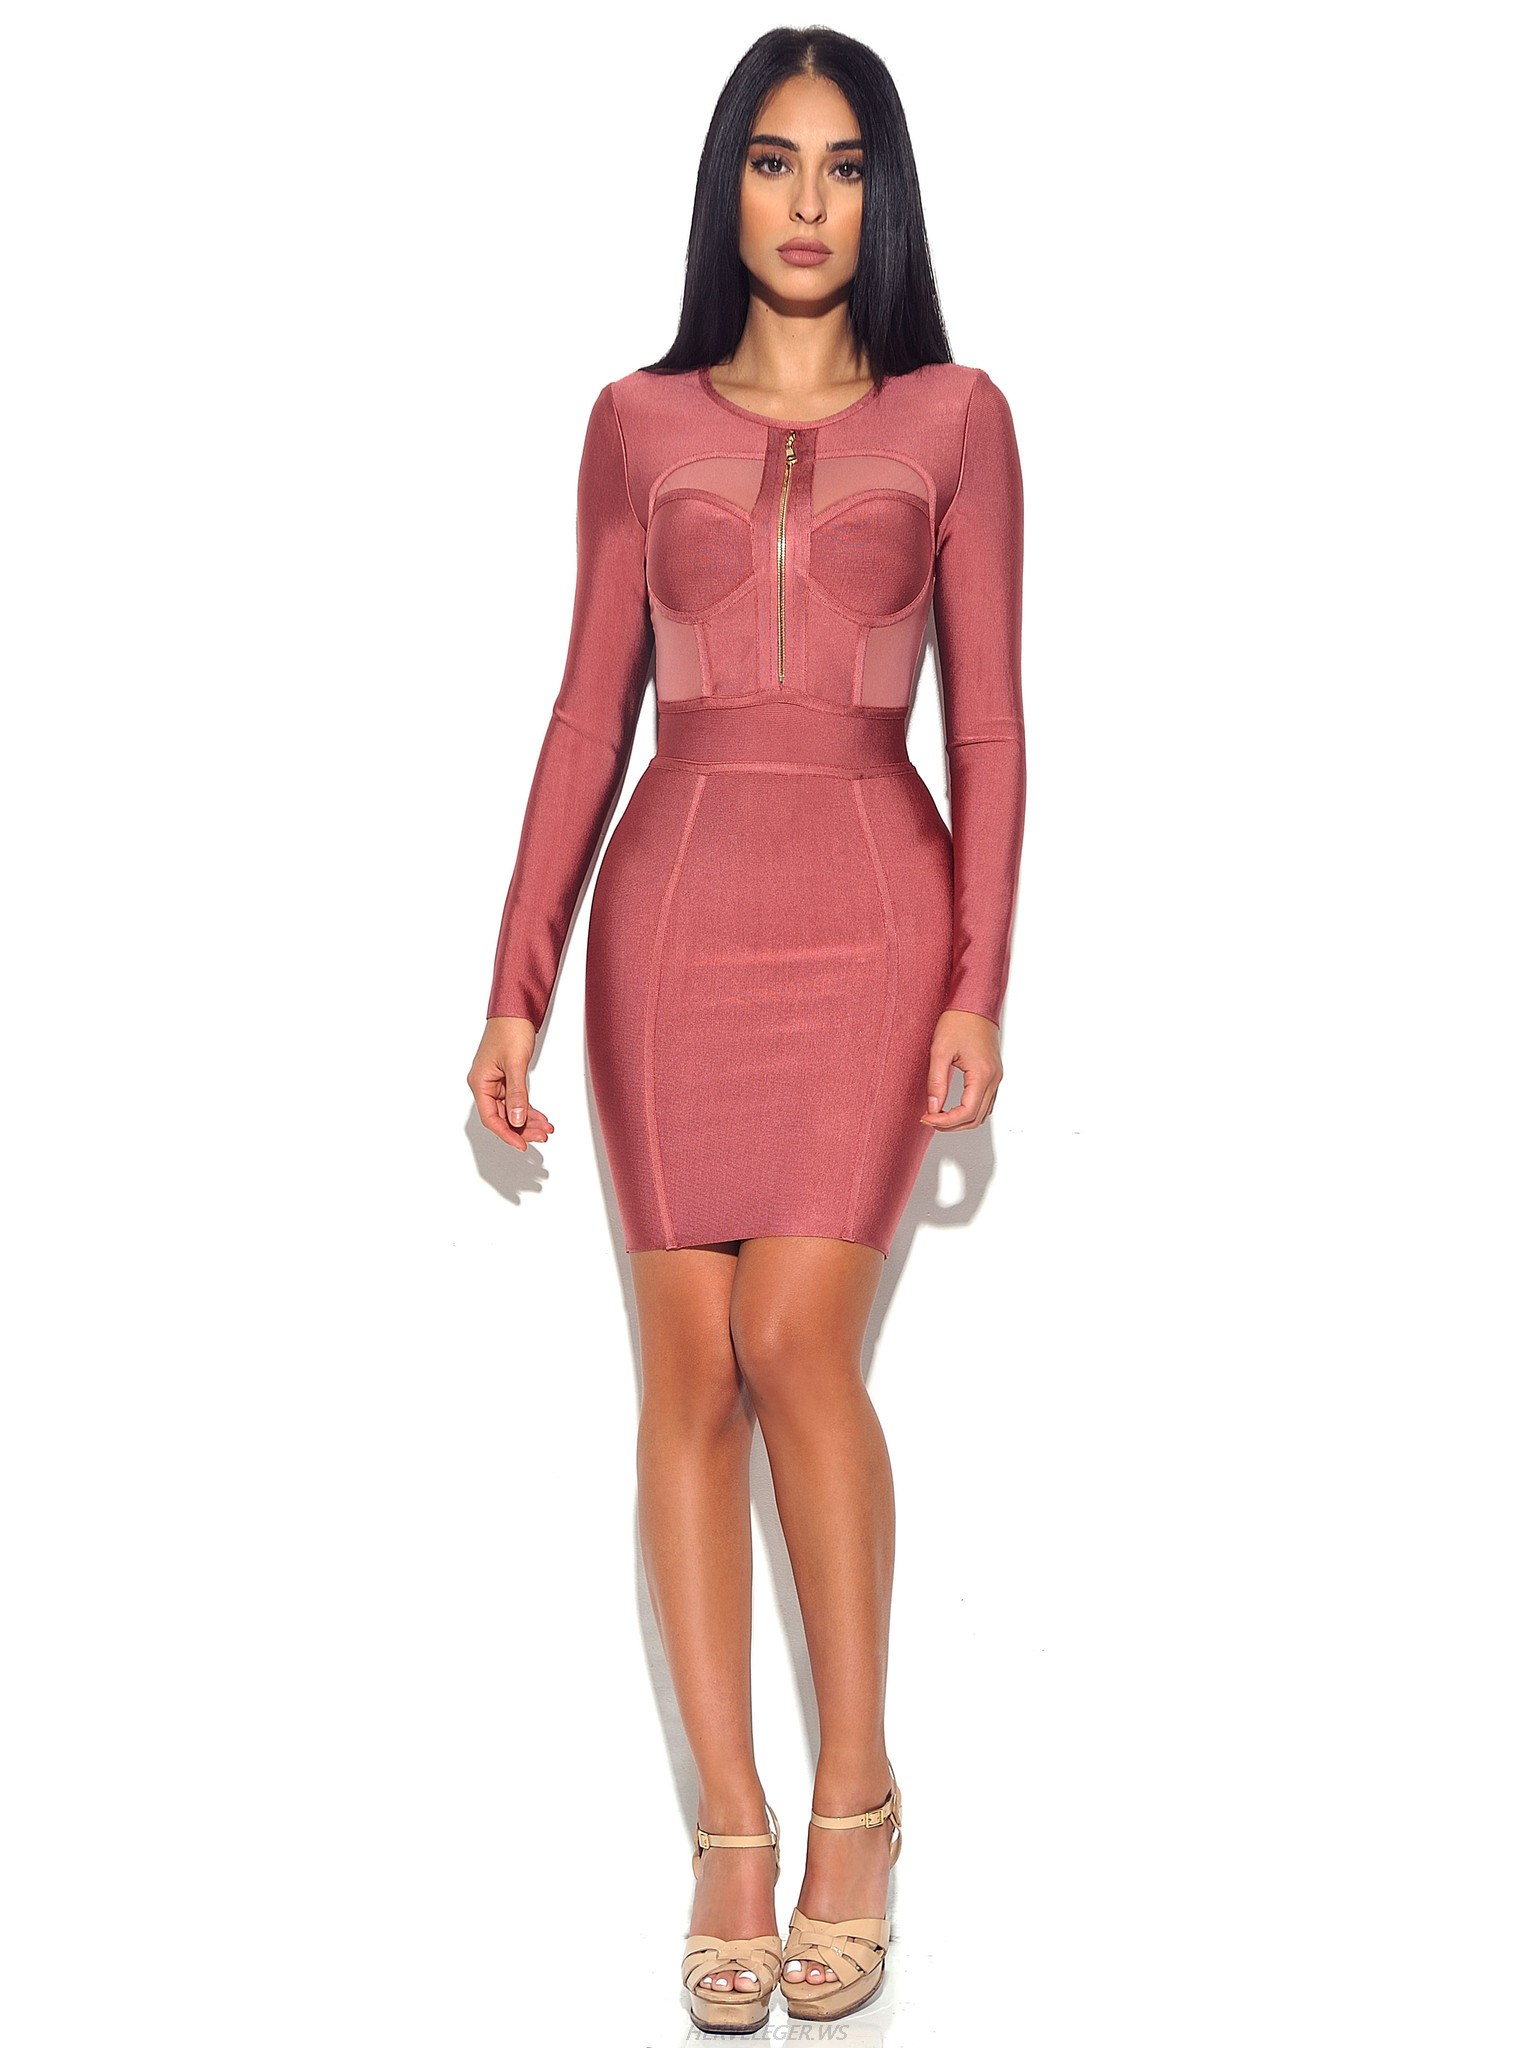 Herve Leger Coral Pink Sheer Cut Out Long Sleeve Dress